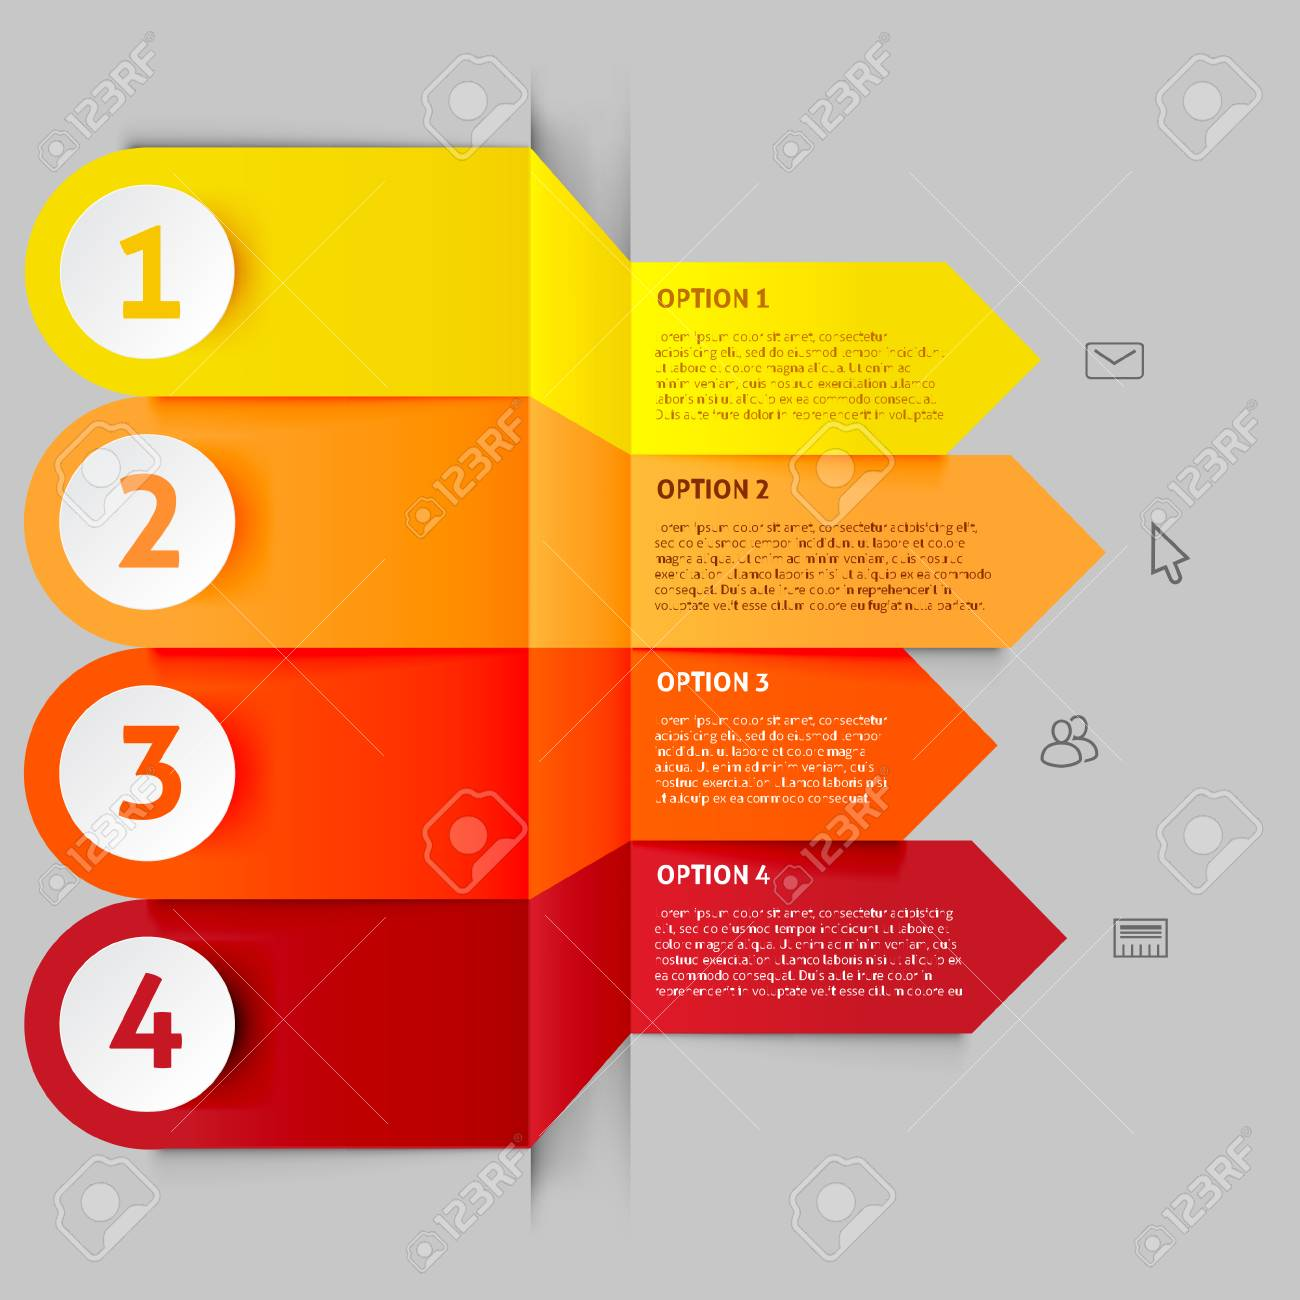 Modern arrow infographics elements origami style for workflow